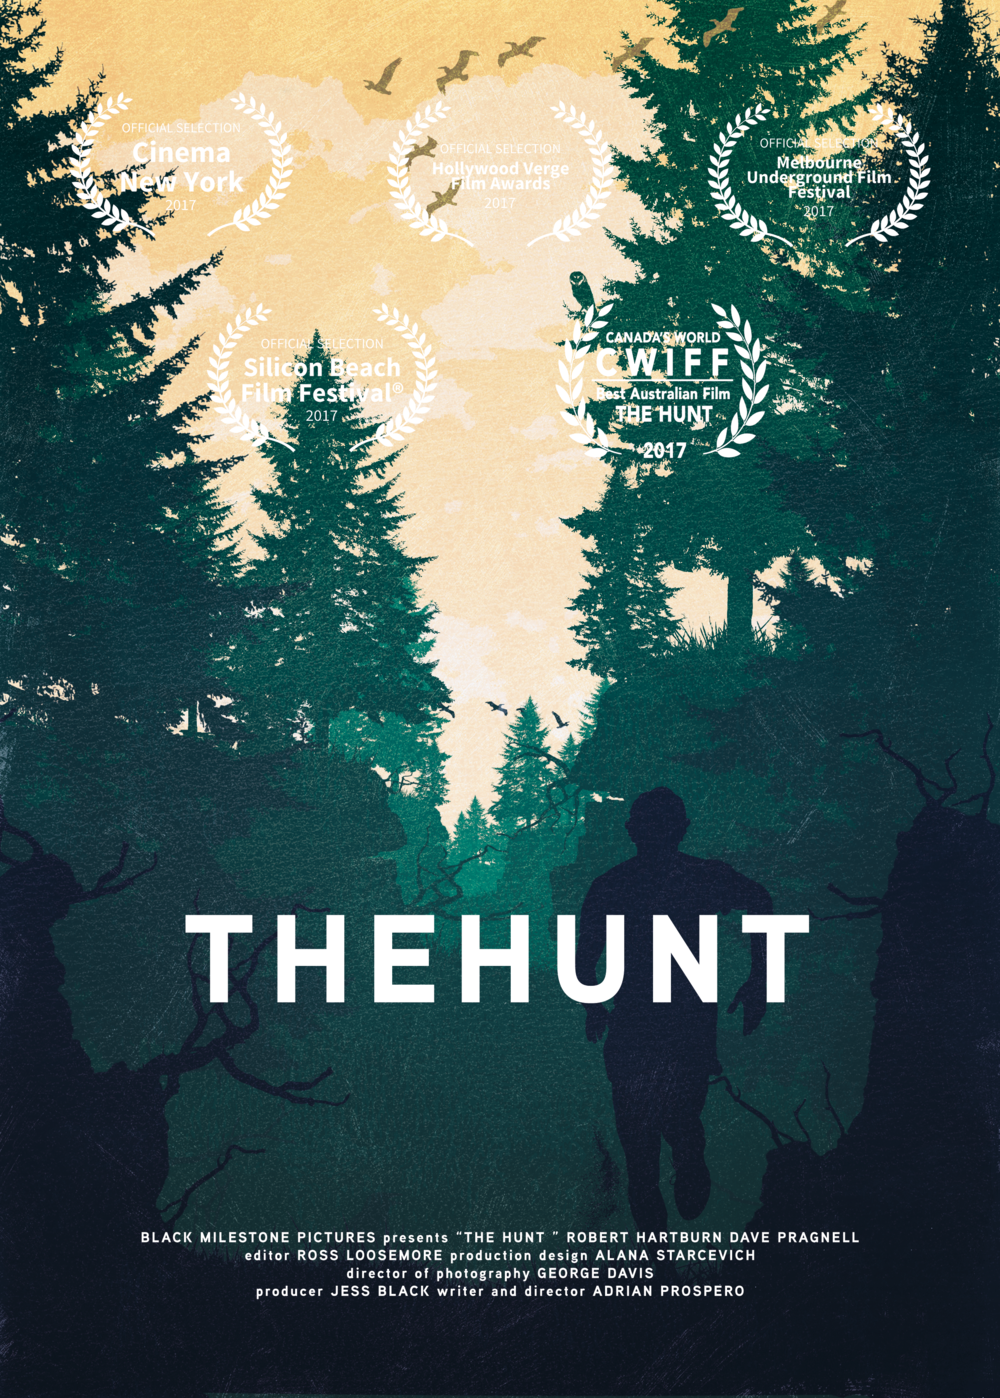 thehunt.png